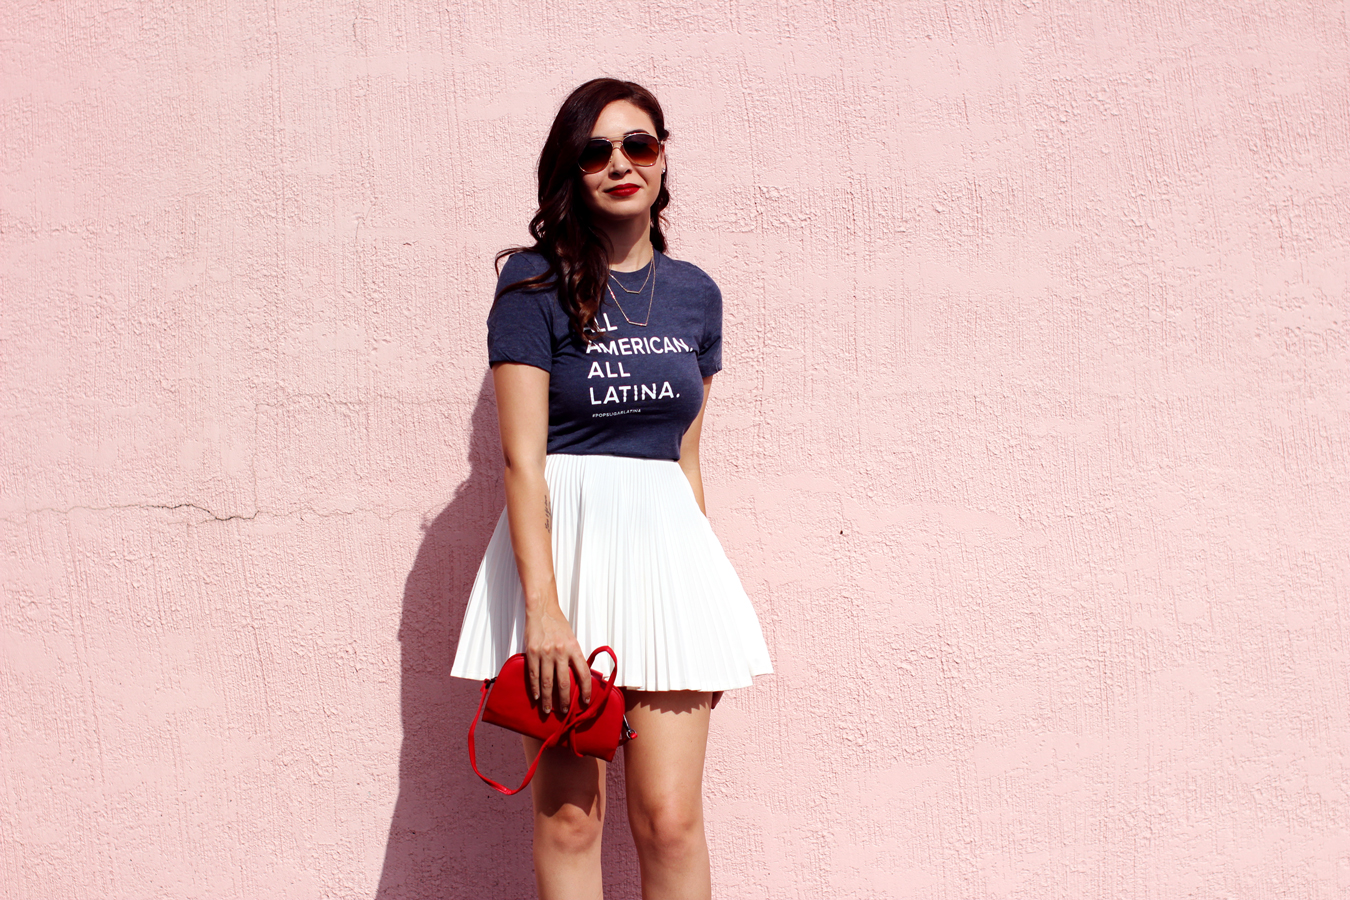 Fixin-to-thrill-latina-austin-fashion-blog-fourth-4th-july-style-holiday-themed-red-white-blue-popsugar-american-5